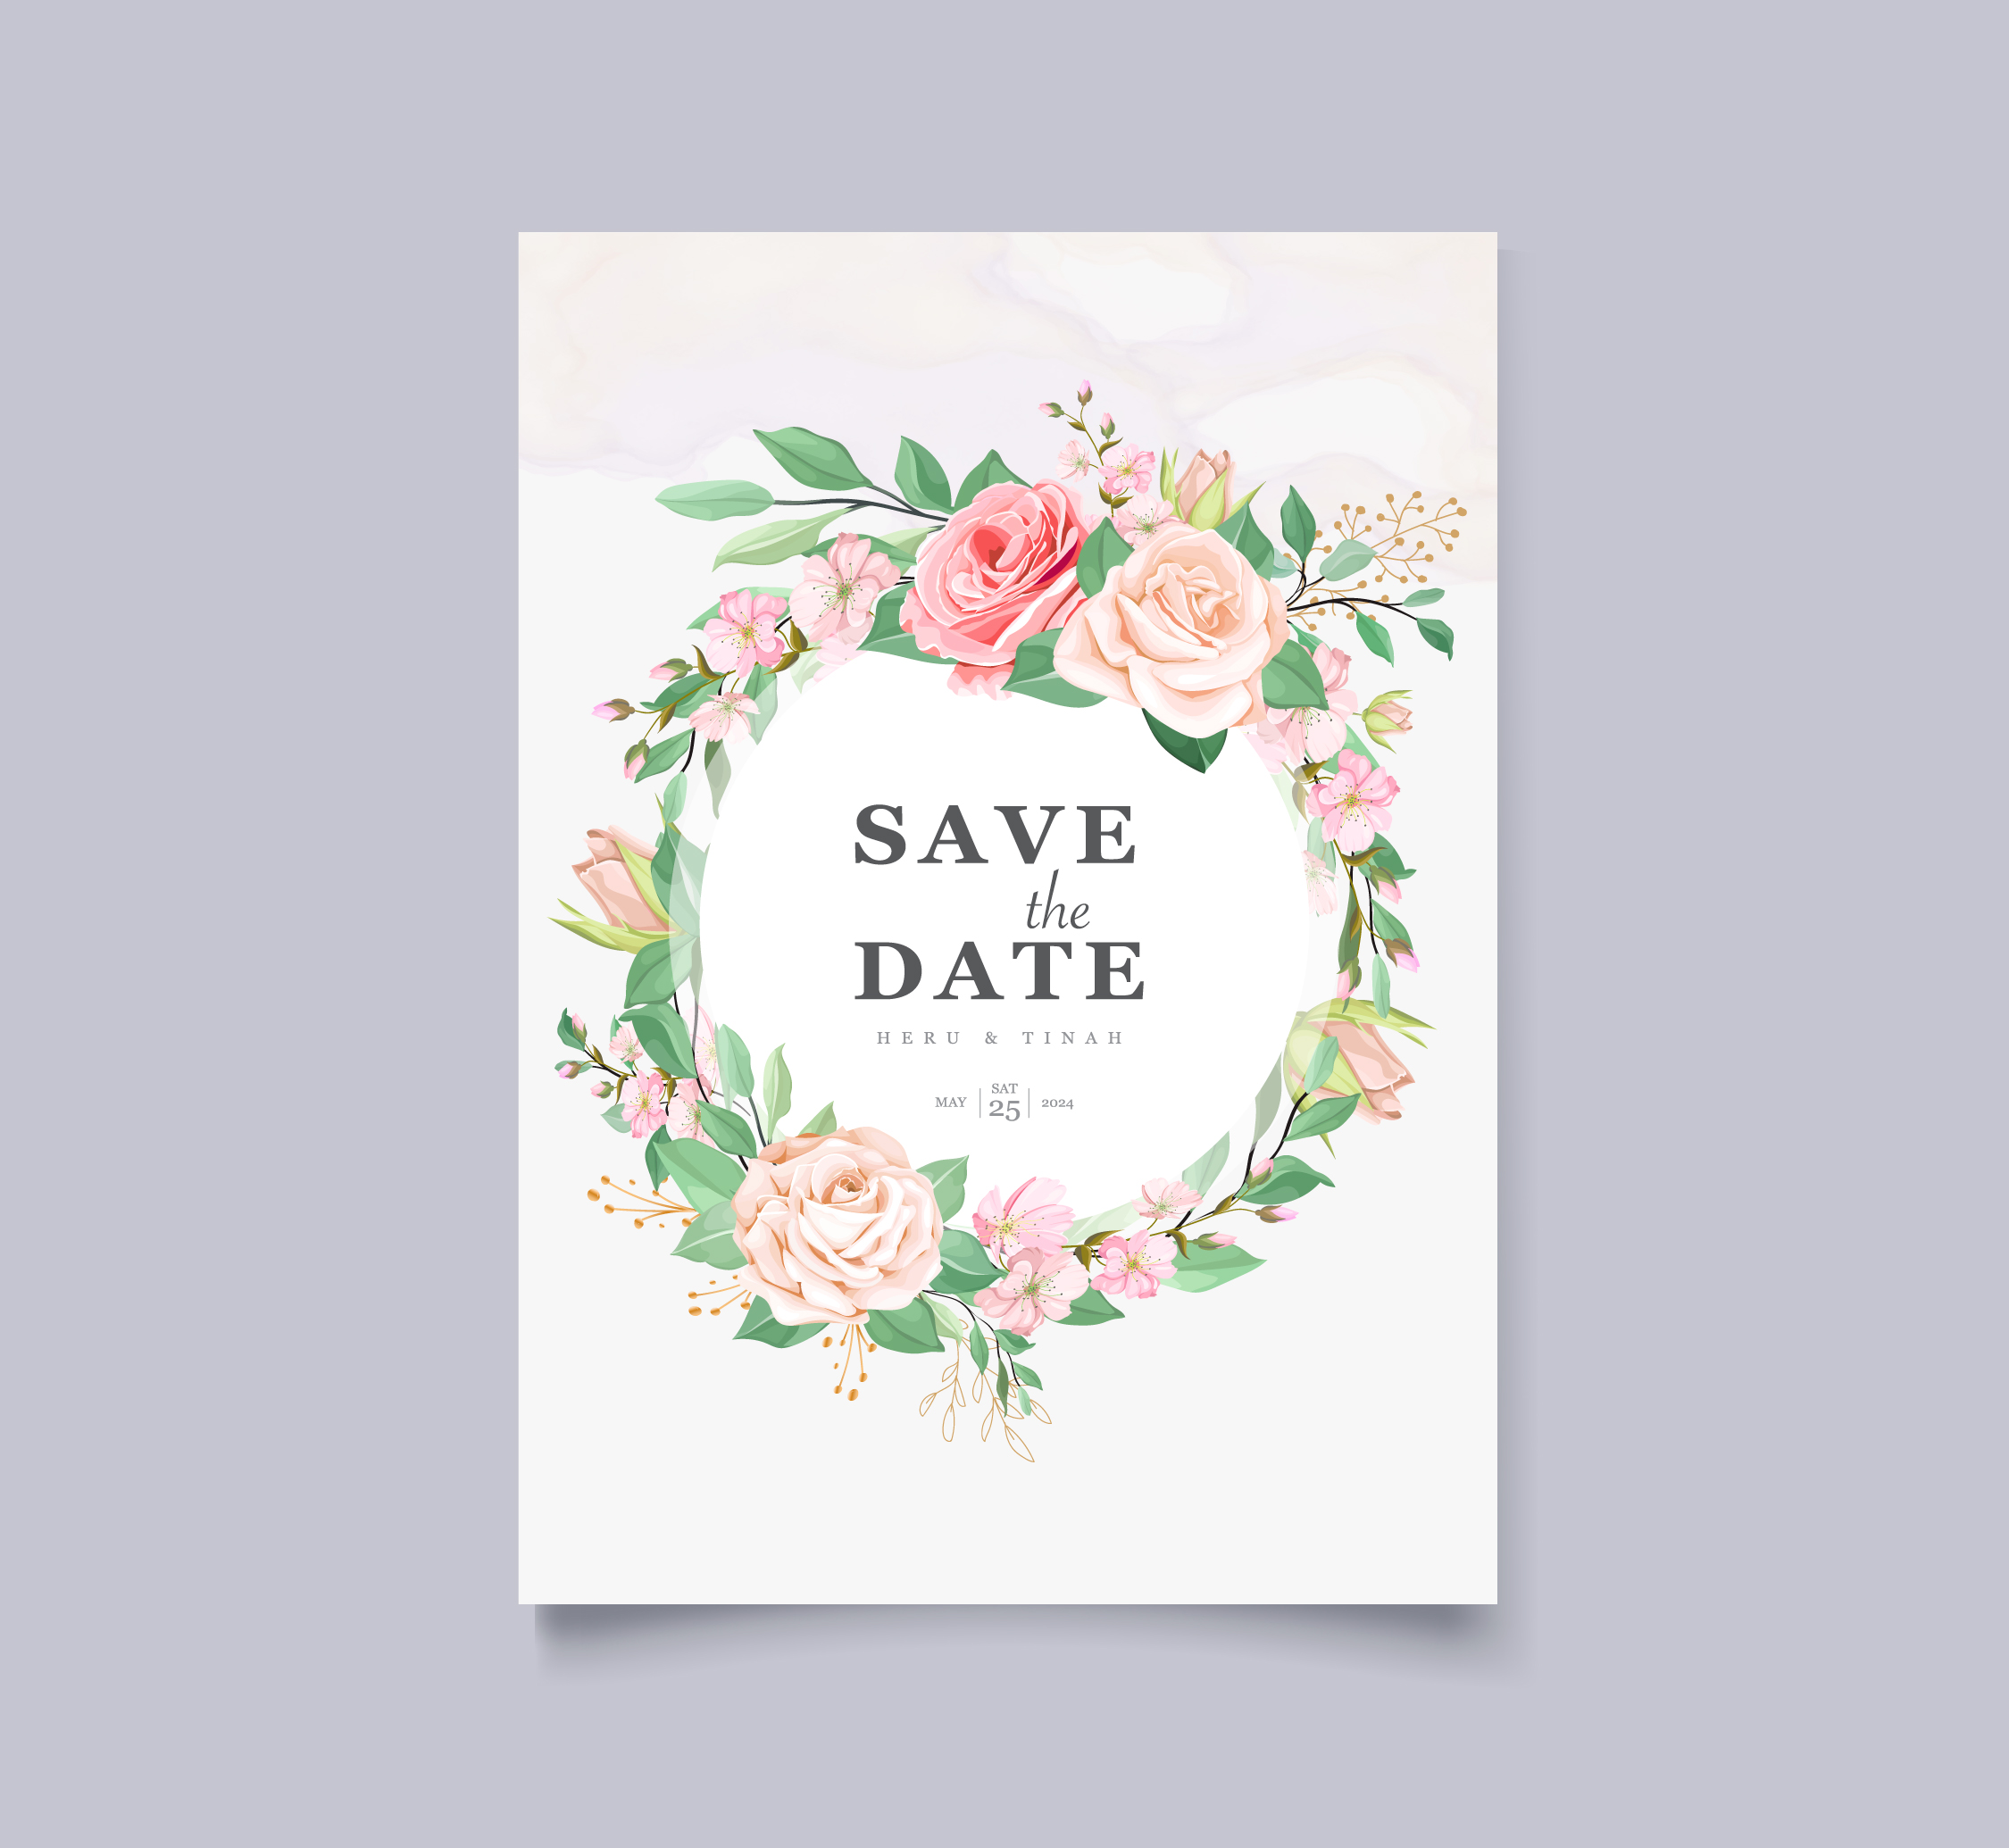 white wedding card with beautiful floral and leaves